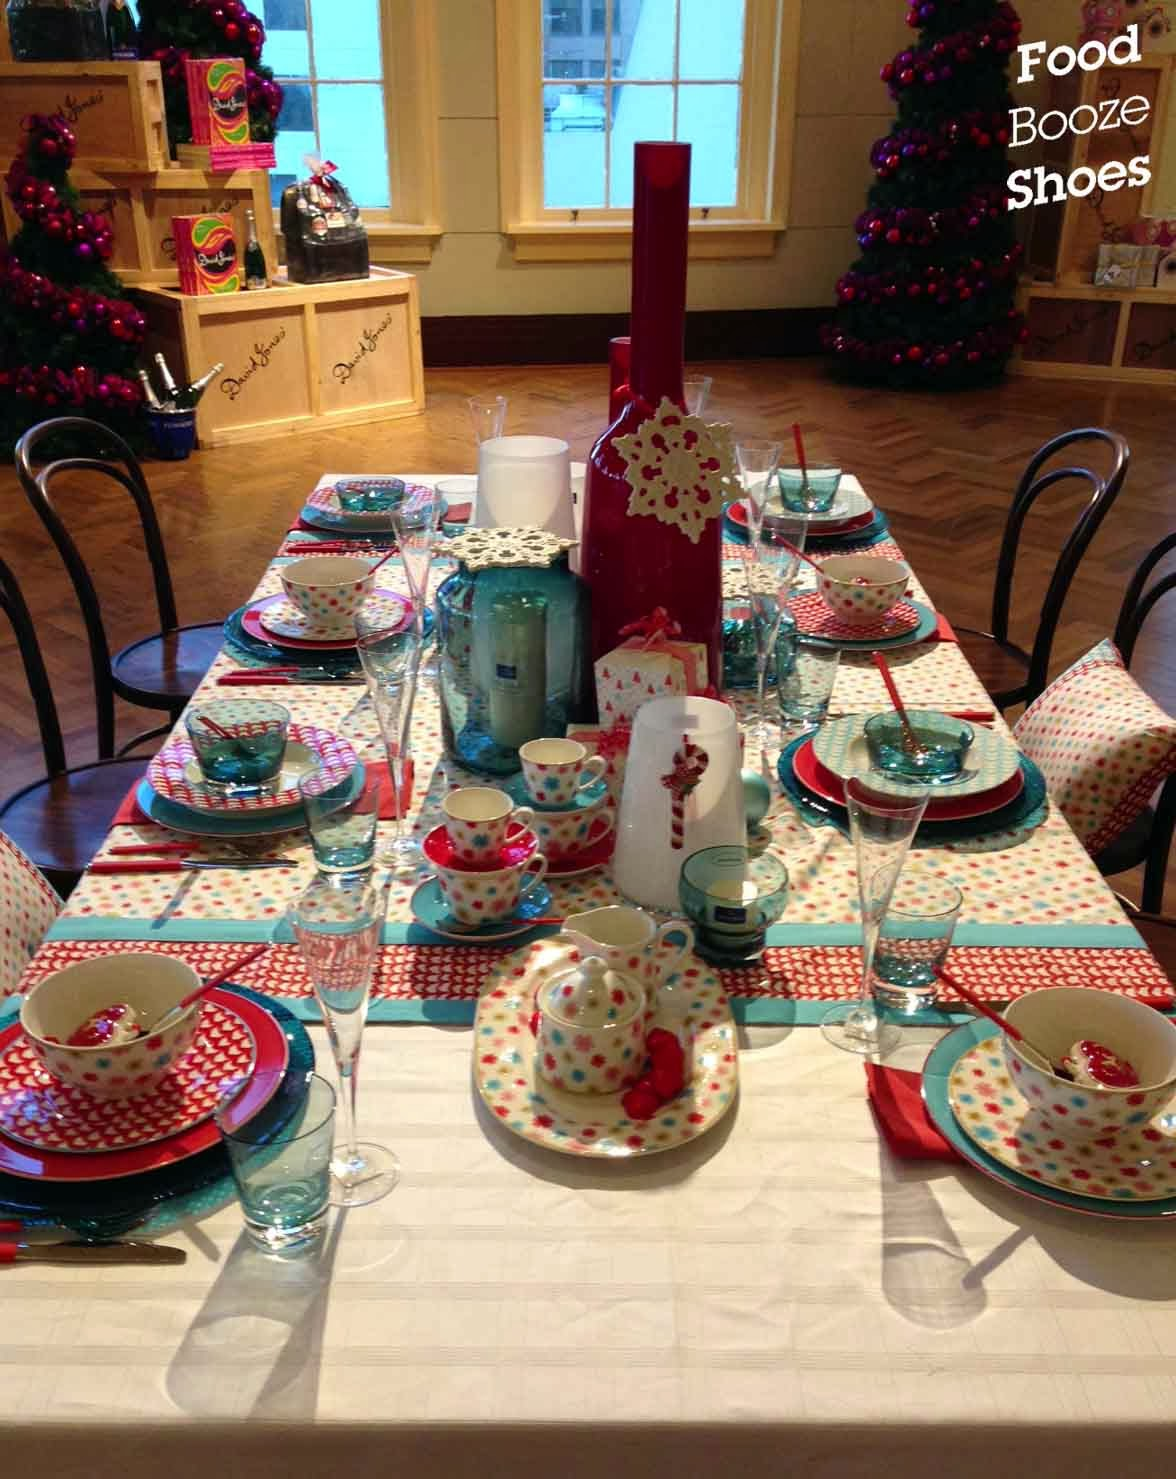 Food booze and shoes christmas lunch david jones style for Christmas lunch table setting ideas